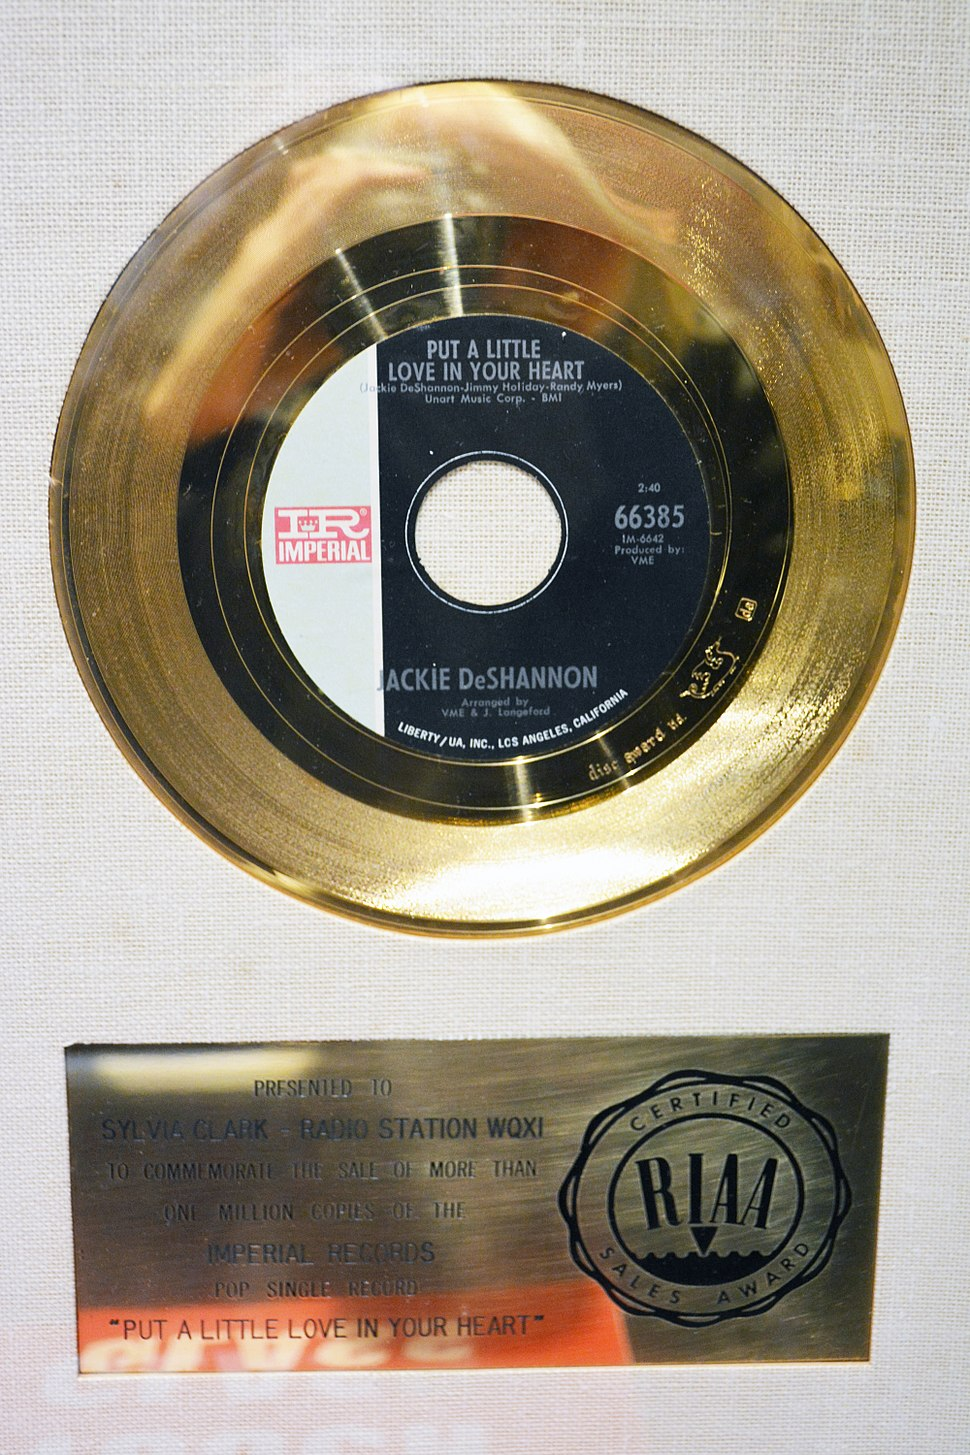 Gold record for Put a Little Love in Your Heart